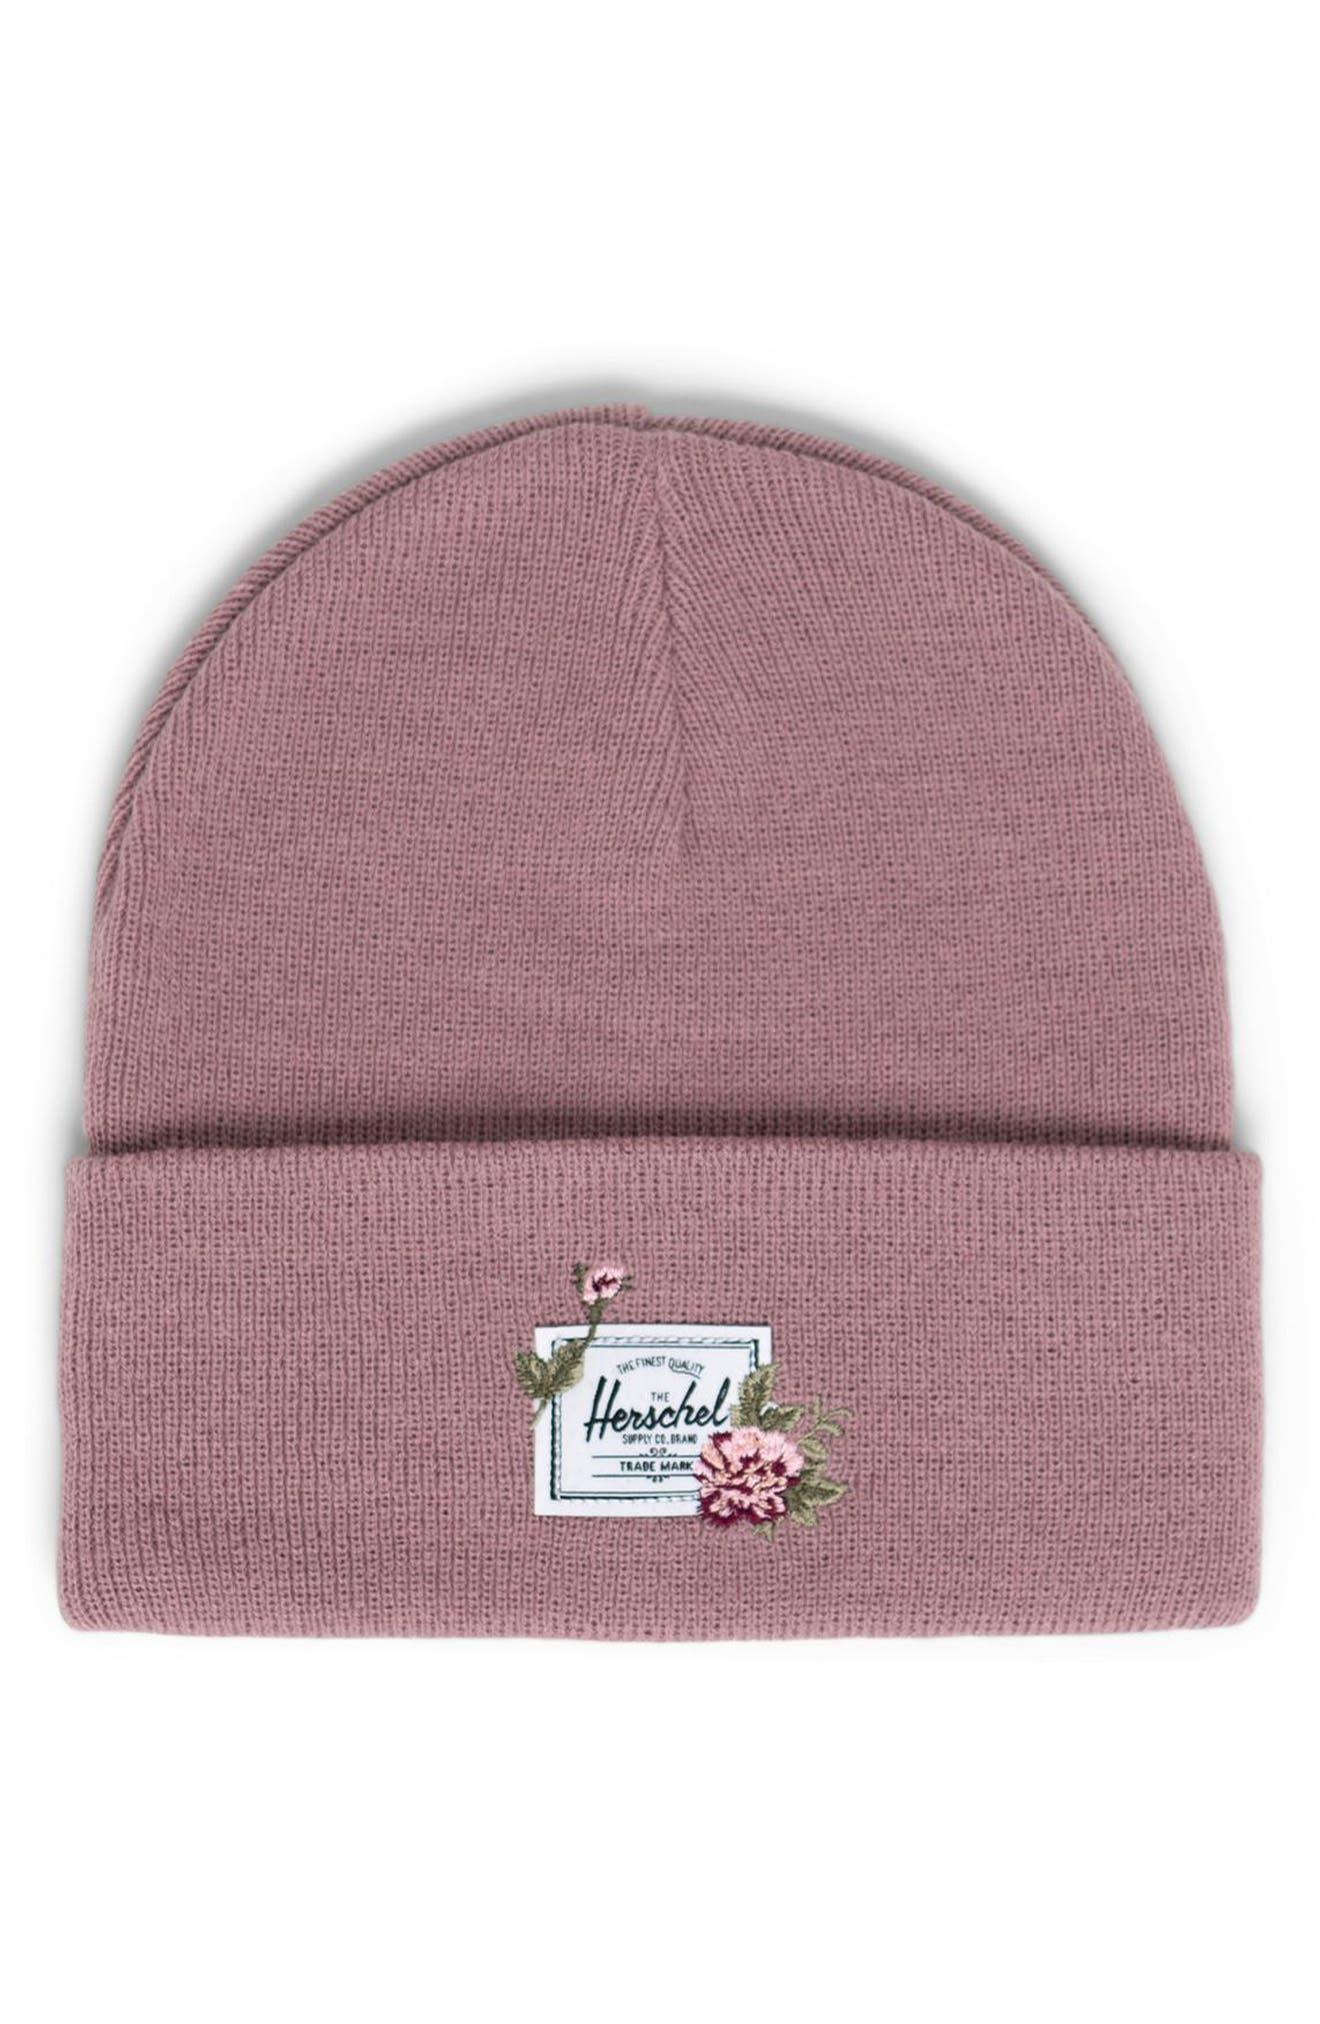 Violet Pink Hat Unisex Unisex URBAN OUTFITTERS Ribbed WOOL Rib Beanie Mint